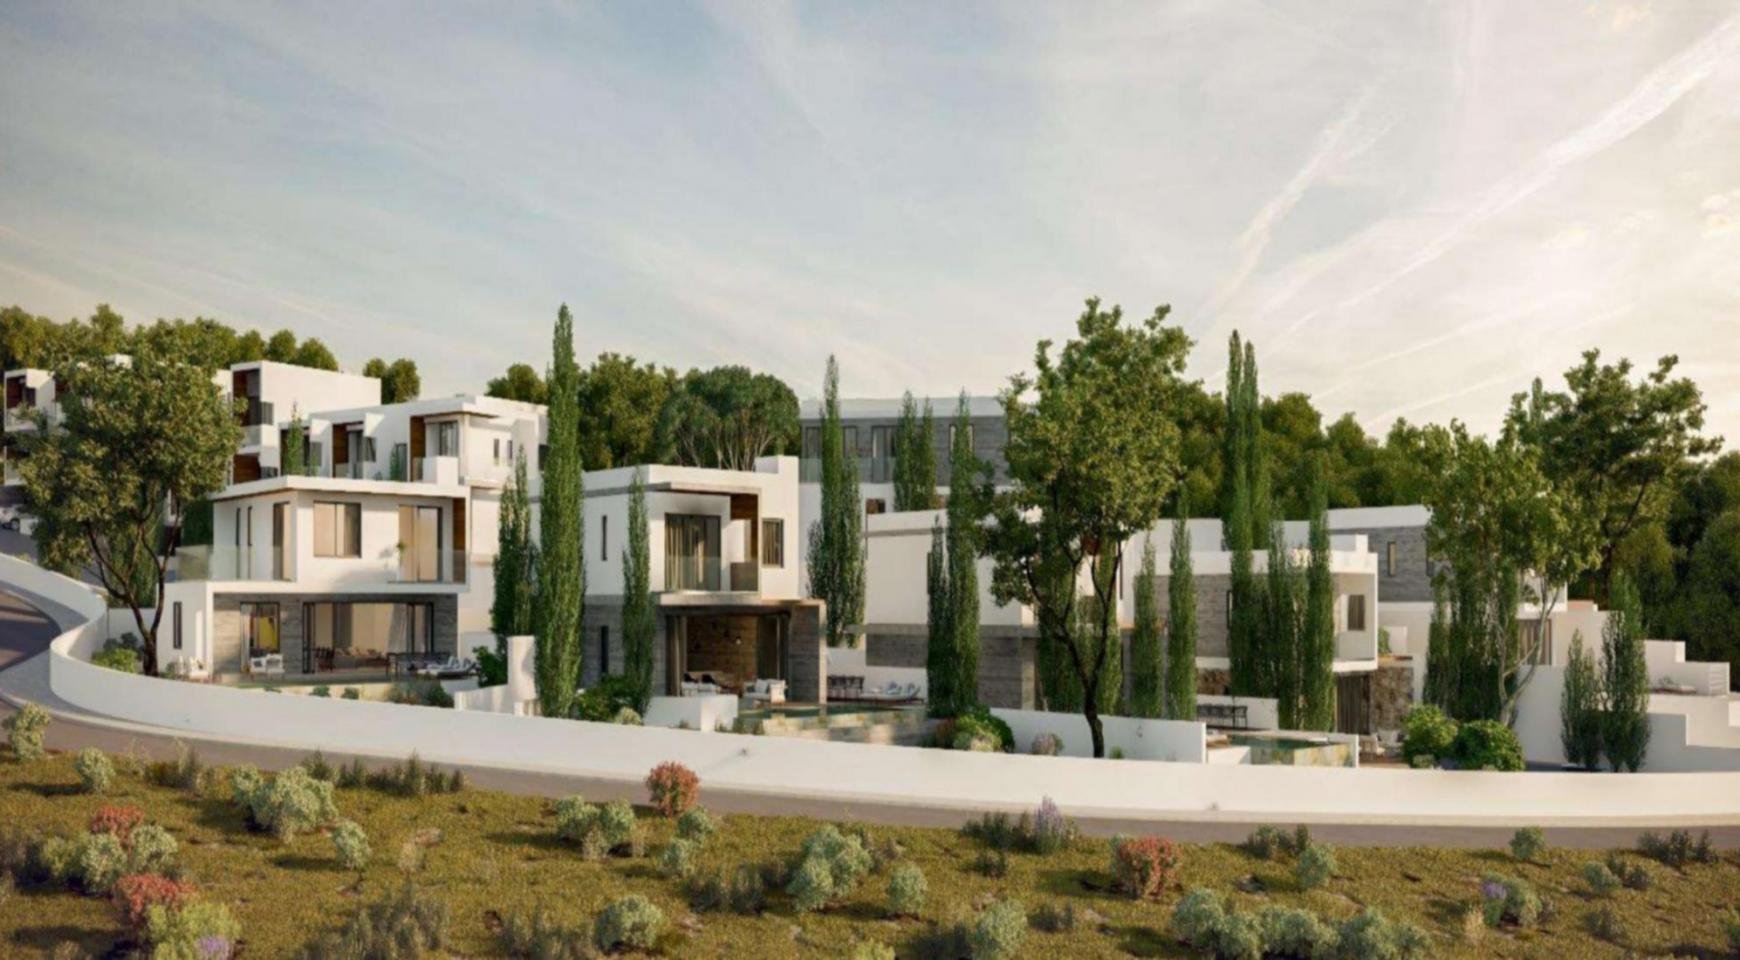 4 Bedroom Villa within a New Project in Agios Tychonas Area - 10